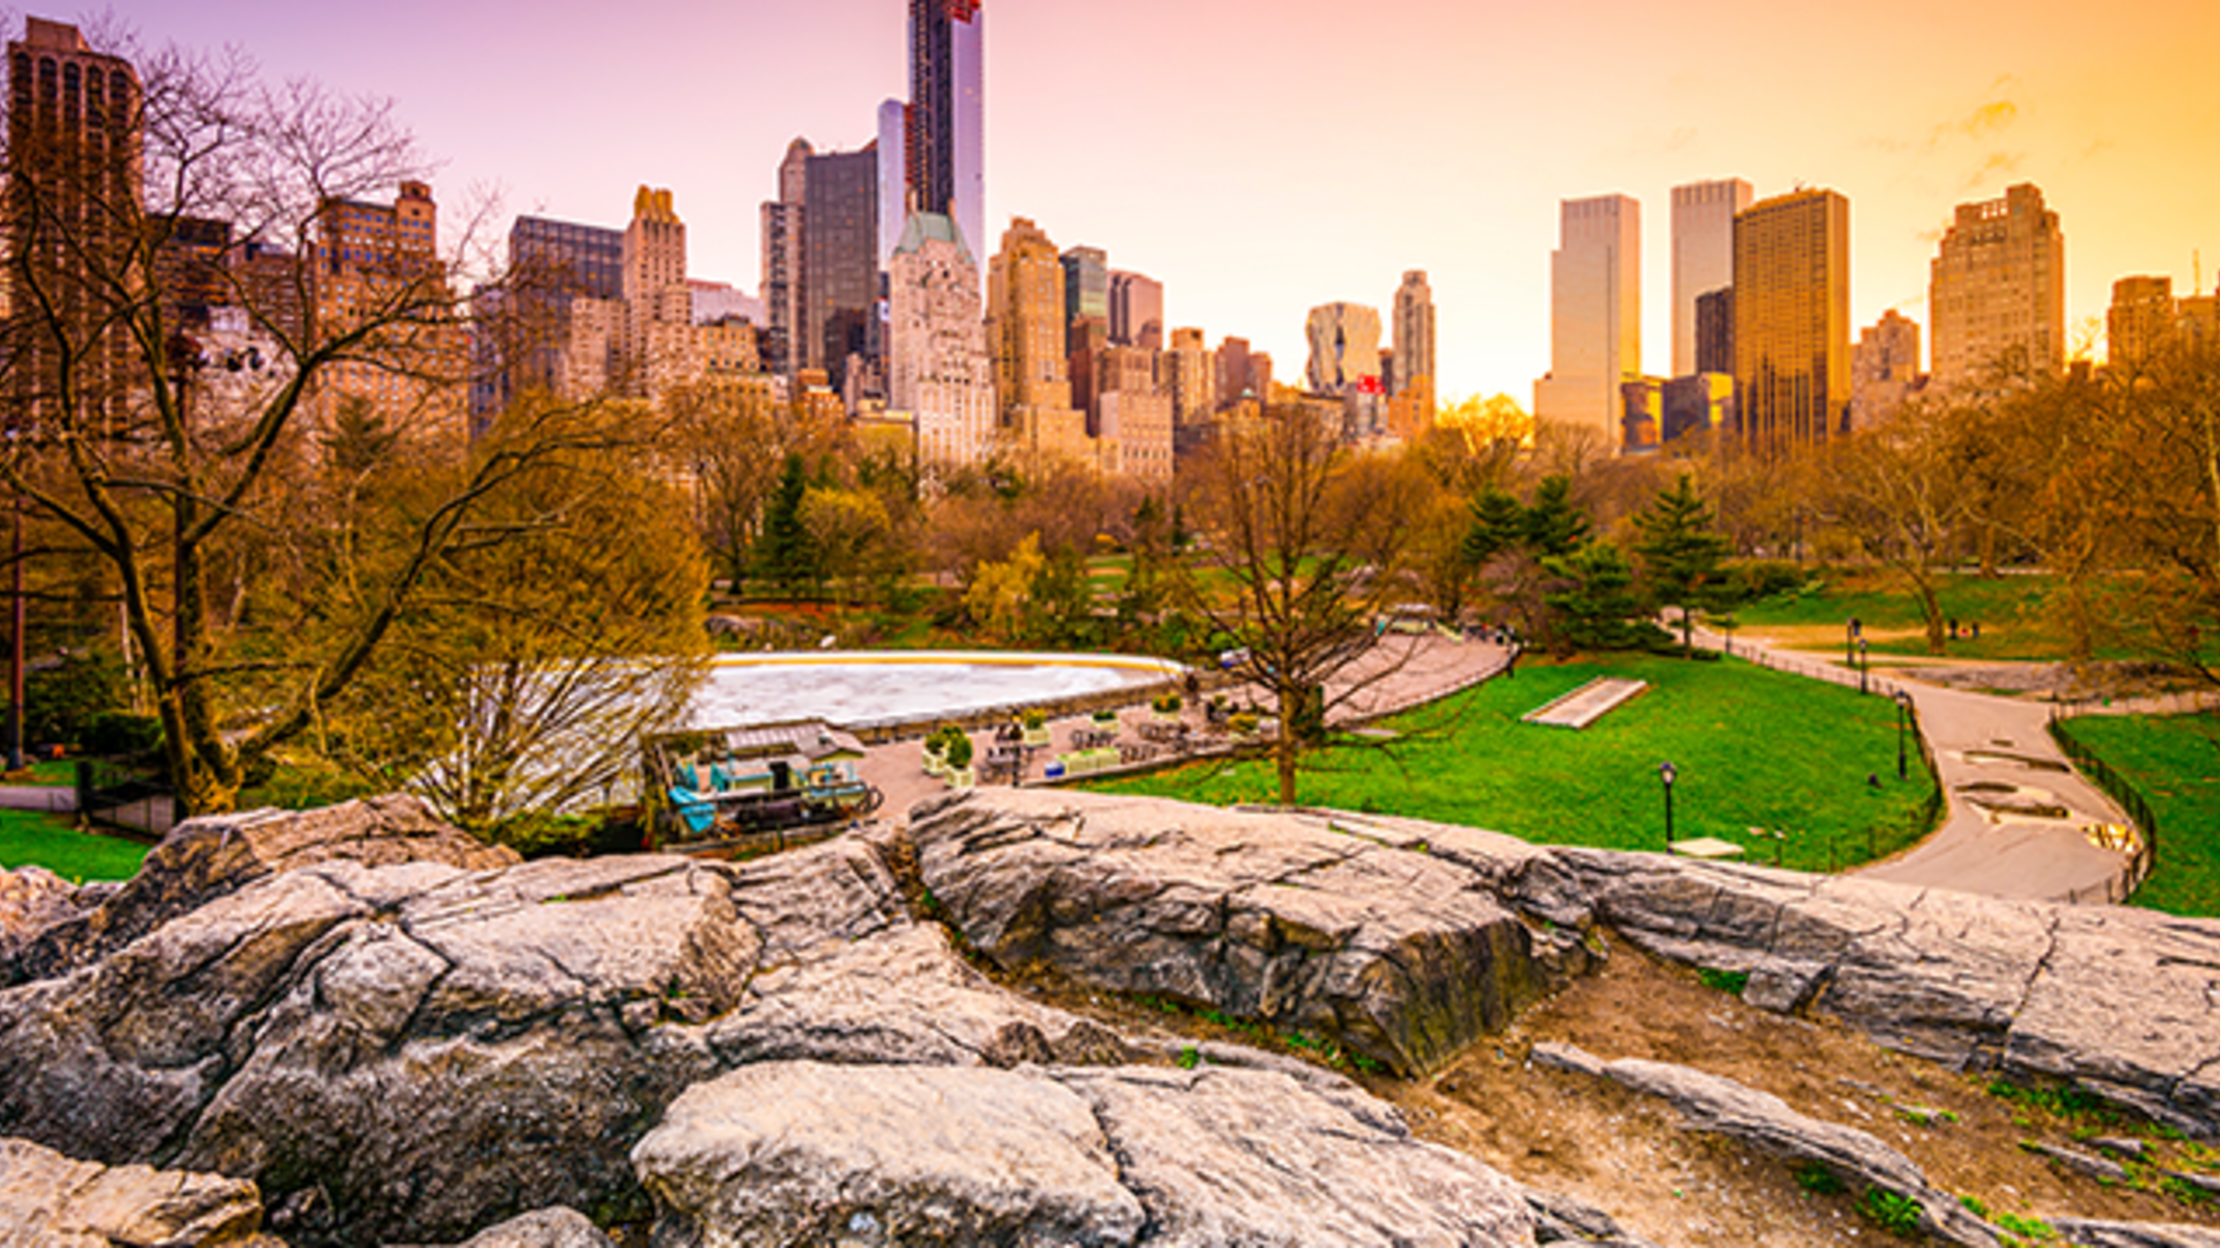 10 Scenic Facts About Central Park Mental Floss